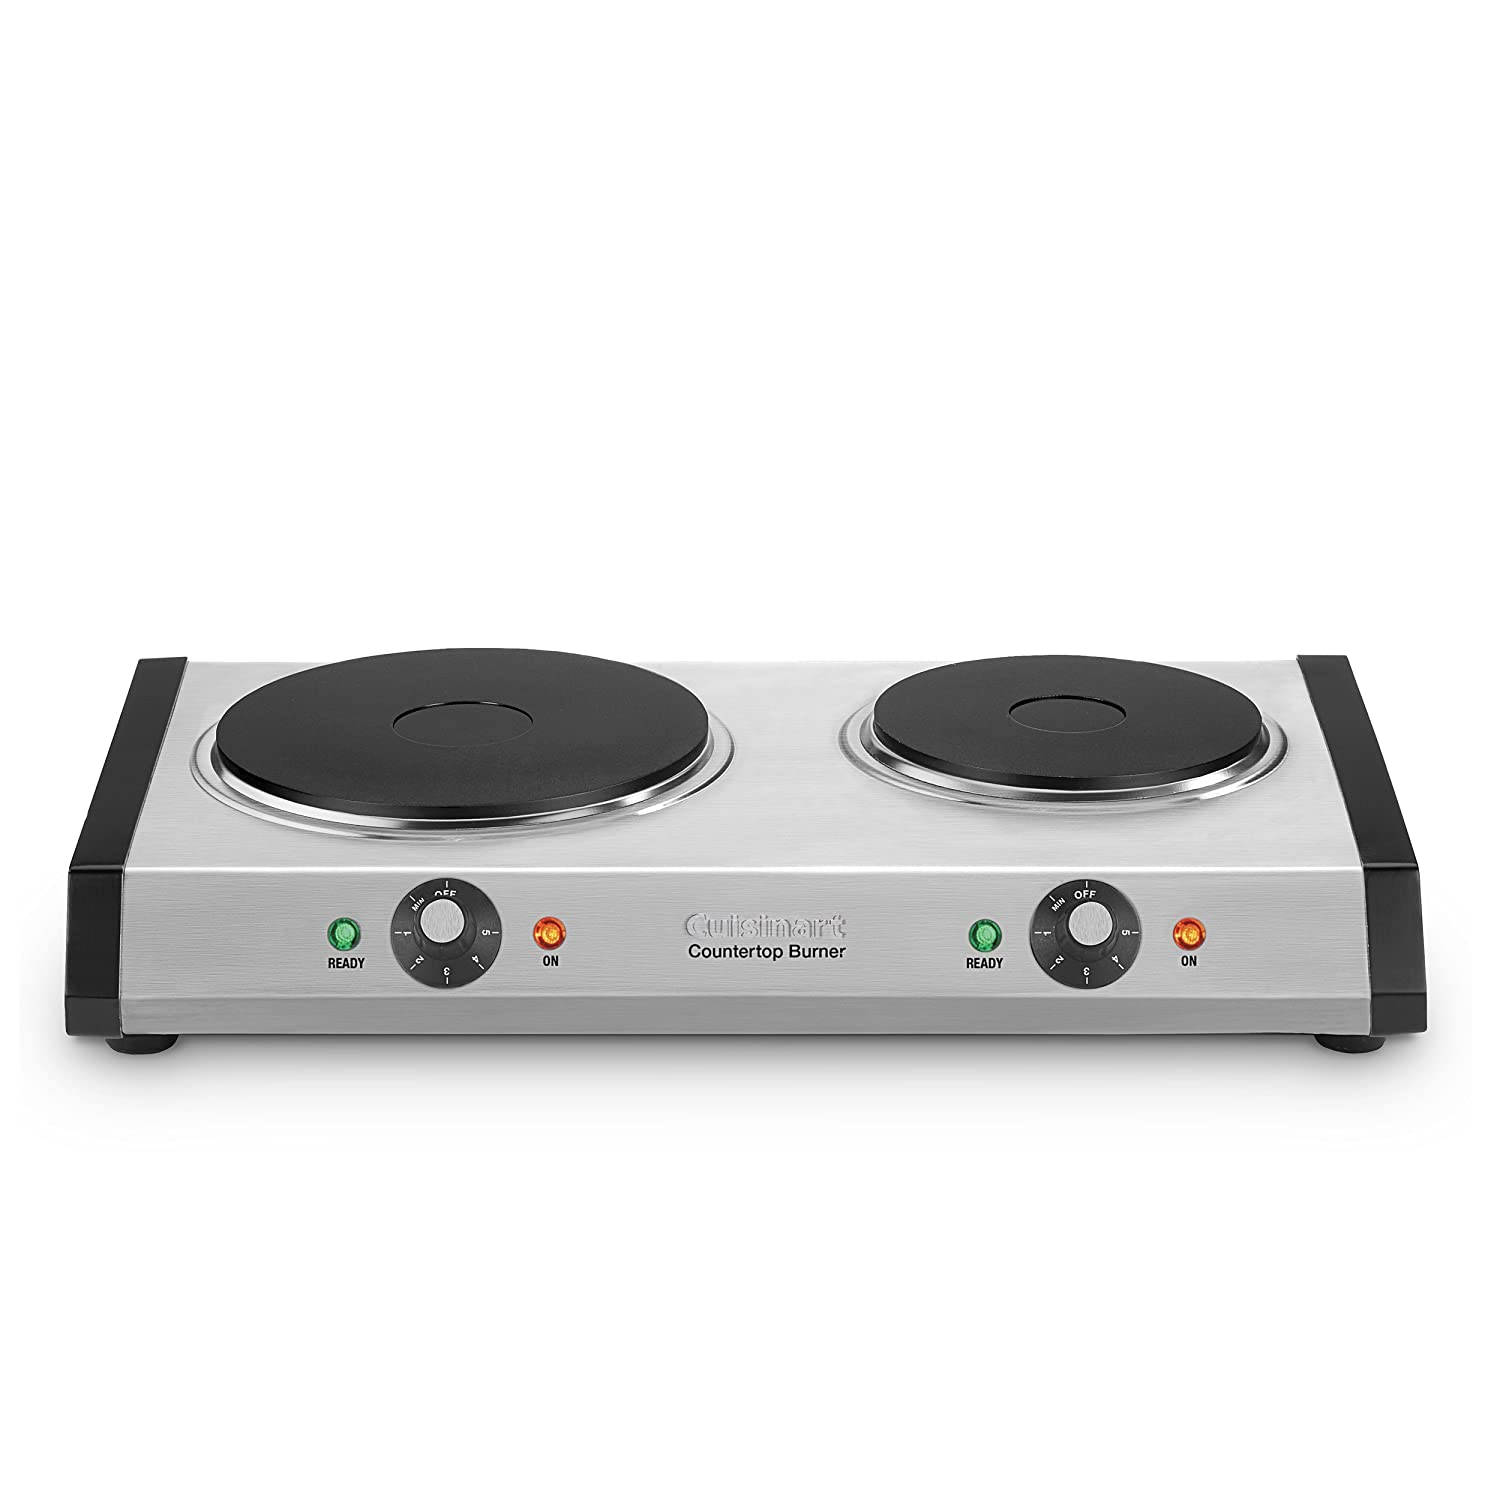 Cuisinart CB-60 Cast Iron Double Burner Review